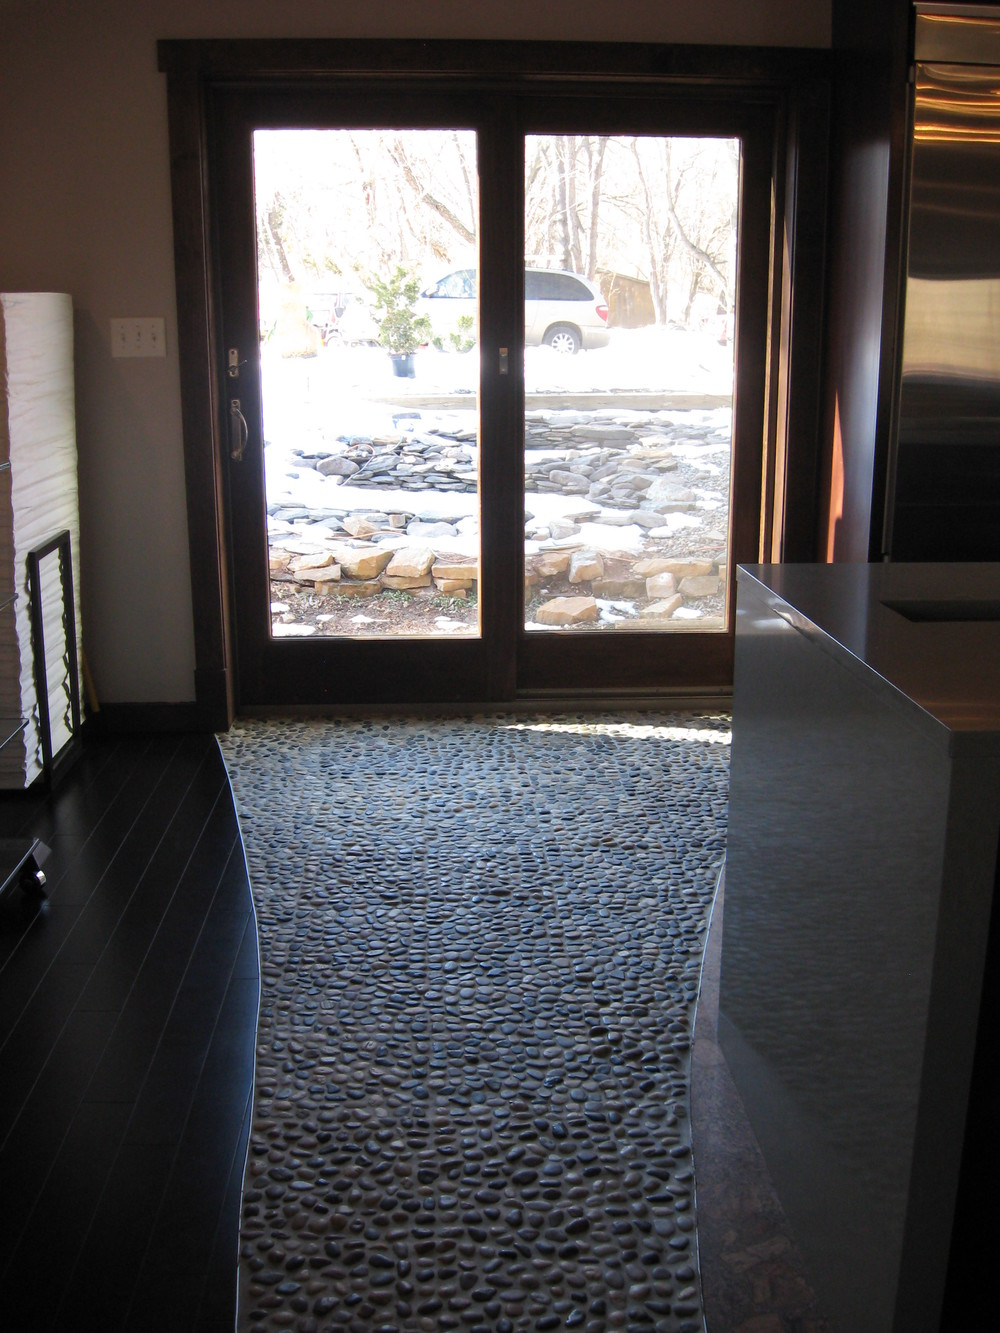 Since these photos were taken, a large pond and landscaping have been installed beyond the doors.